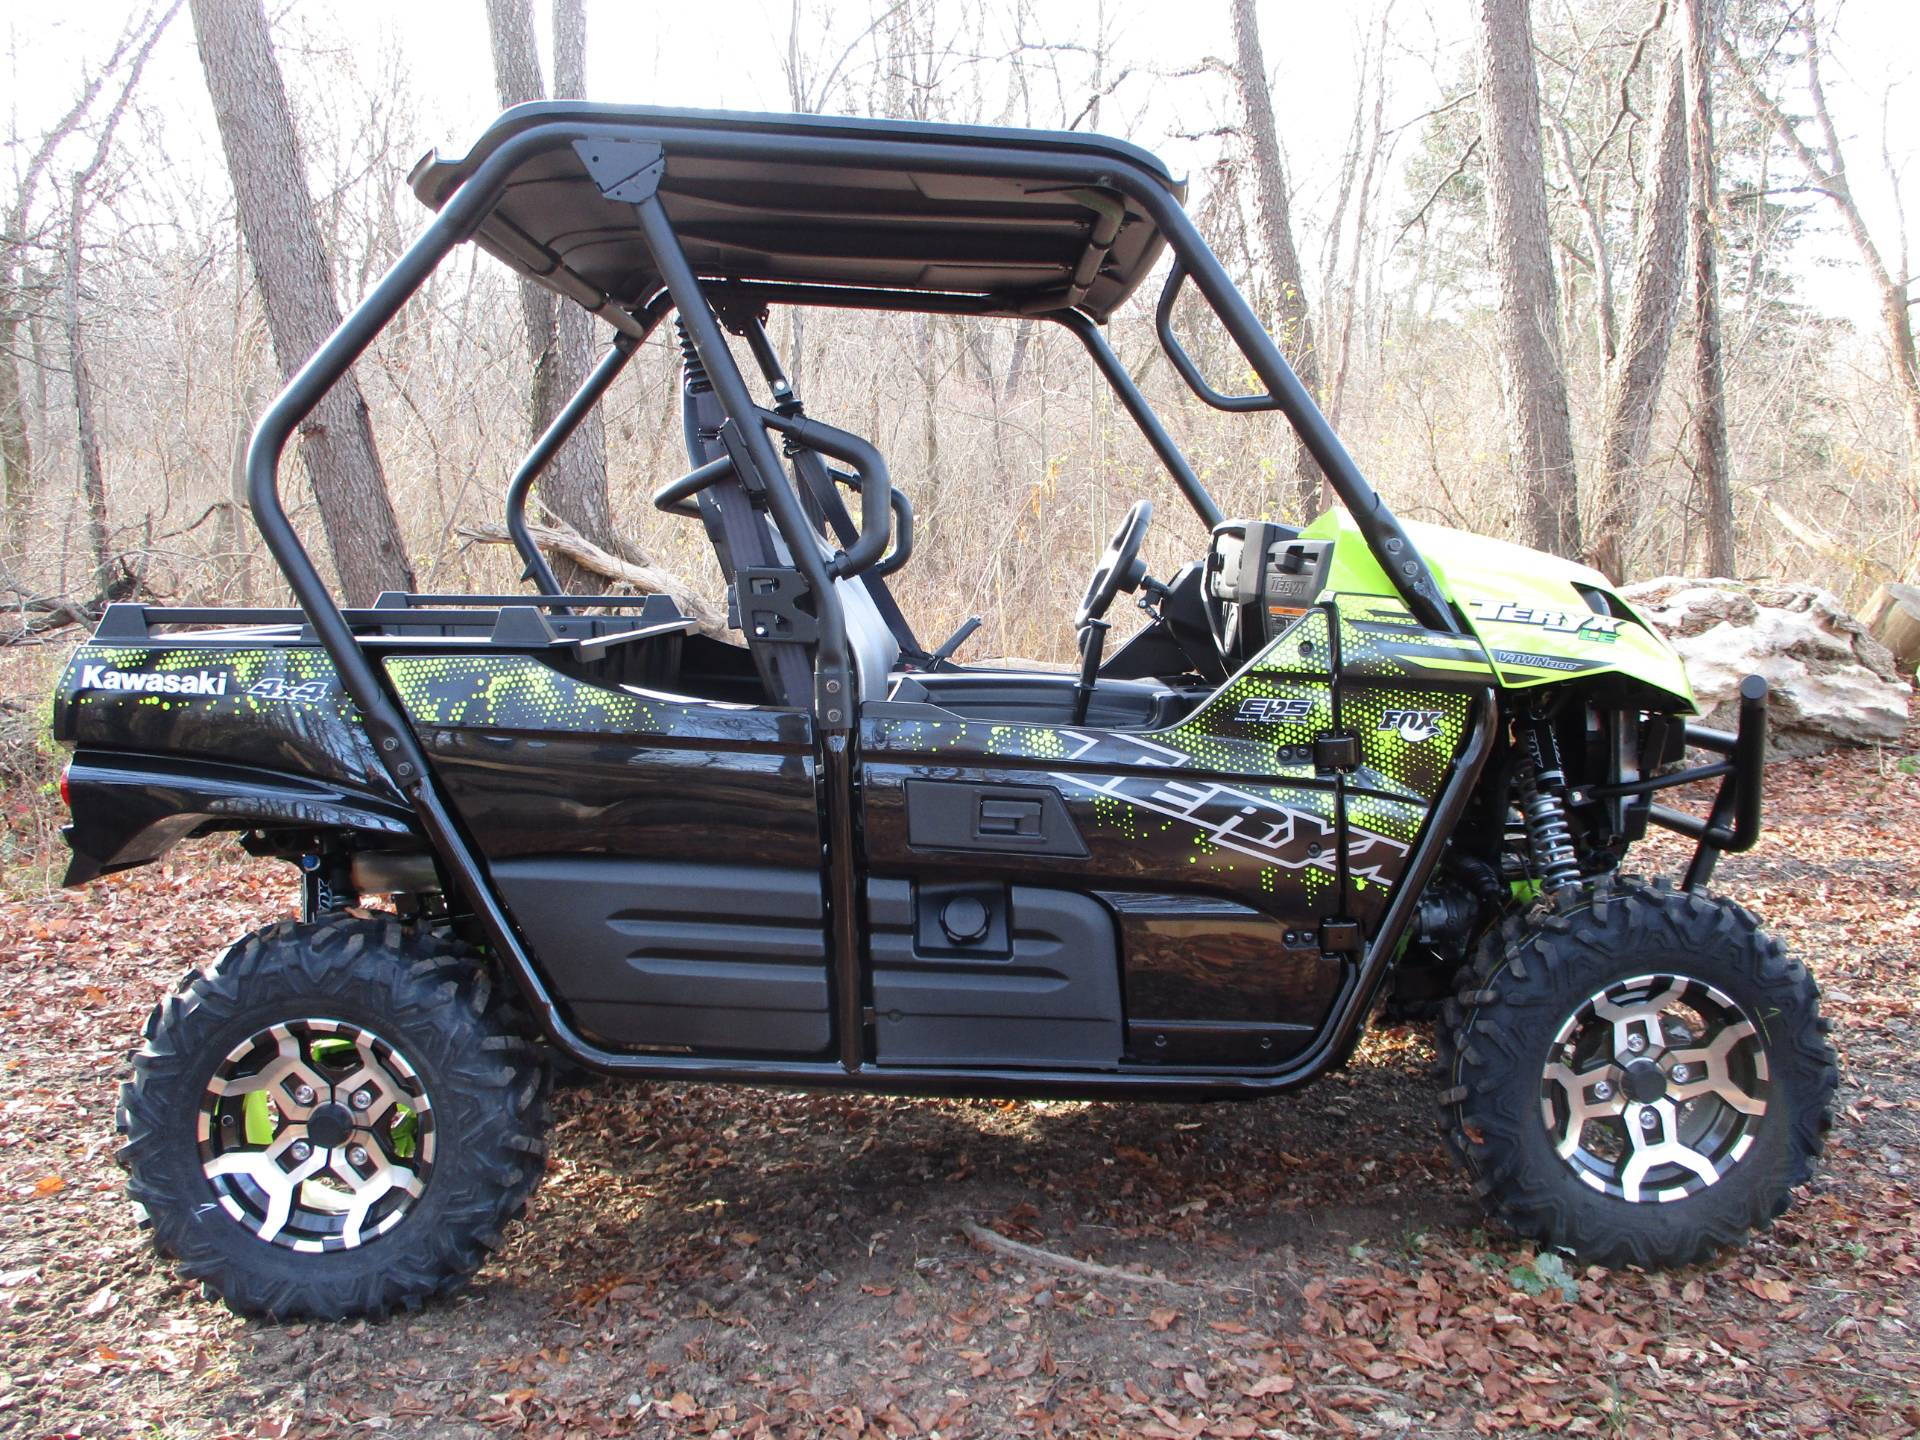 2021 Kawasaki Teryx LE in Howell, Michigan - Photo 8